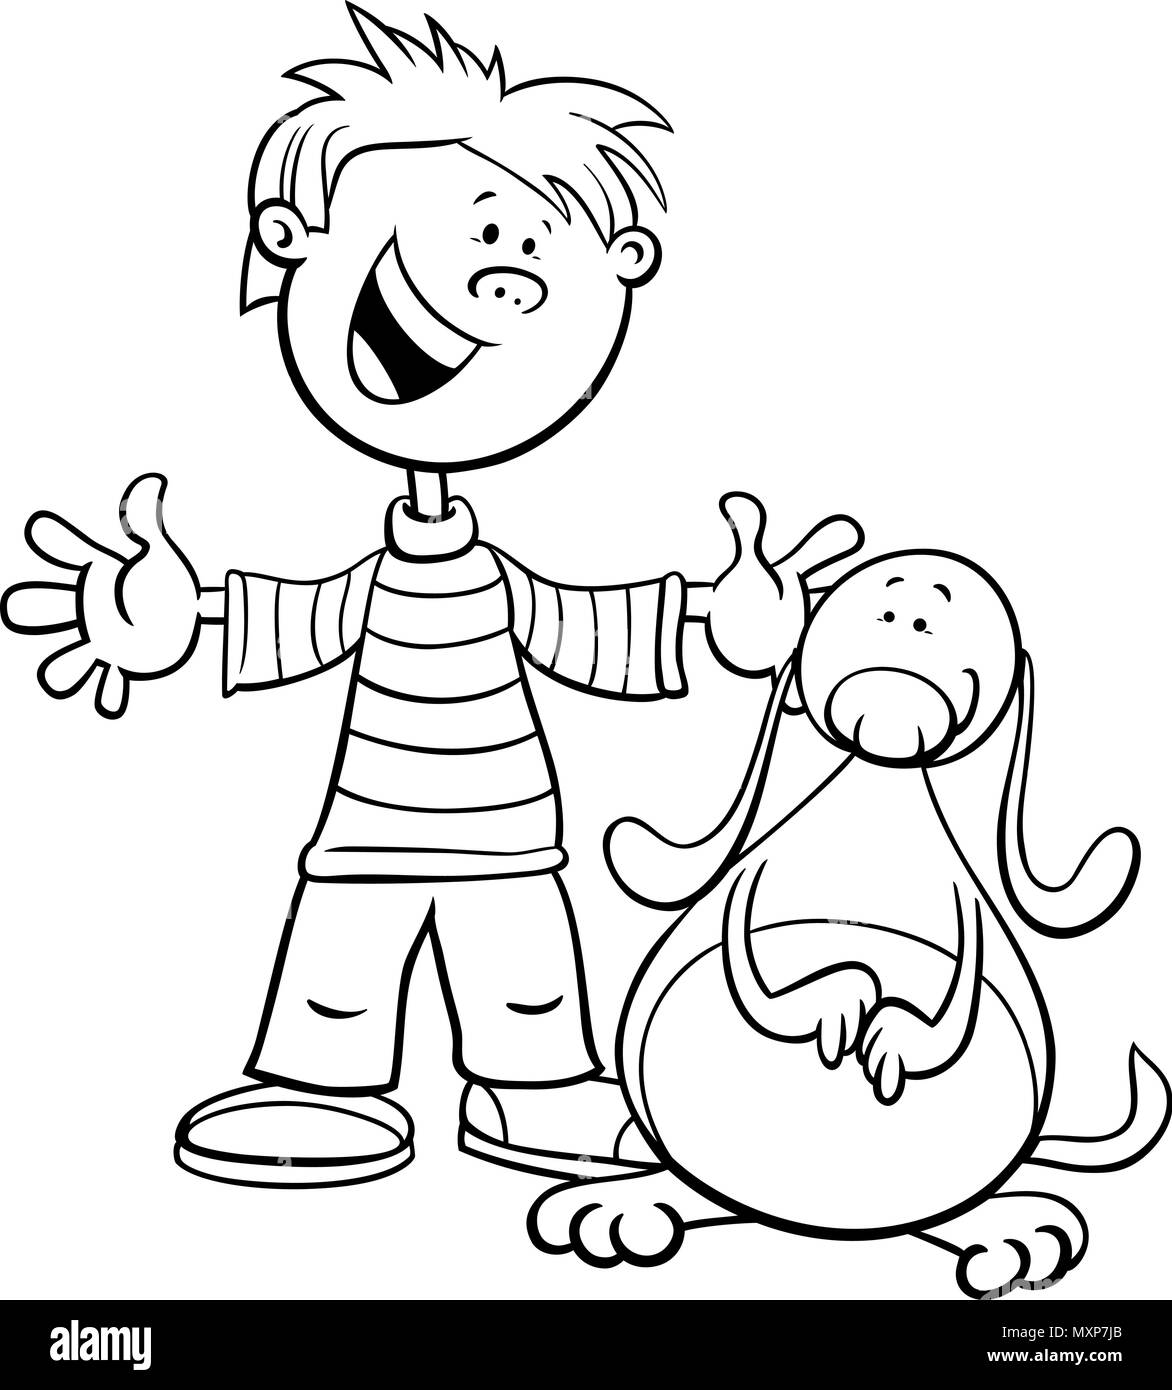 Black and White Cartoon Illustration of Kid Boy with Funny Dog or ...